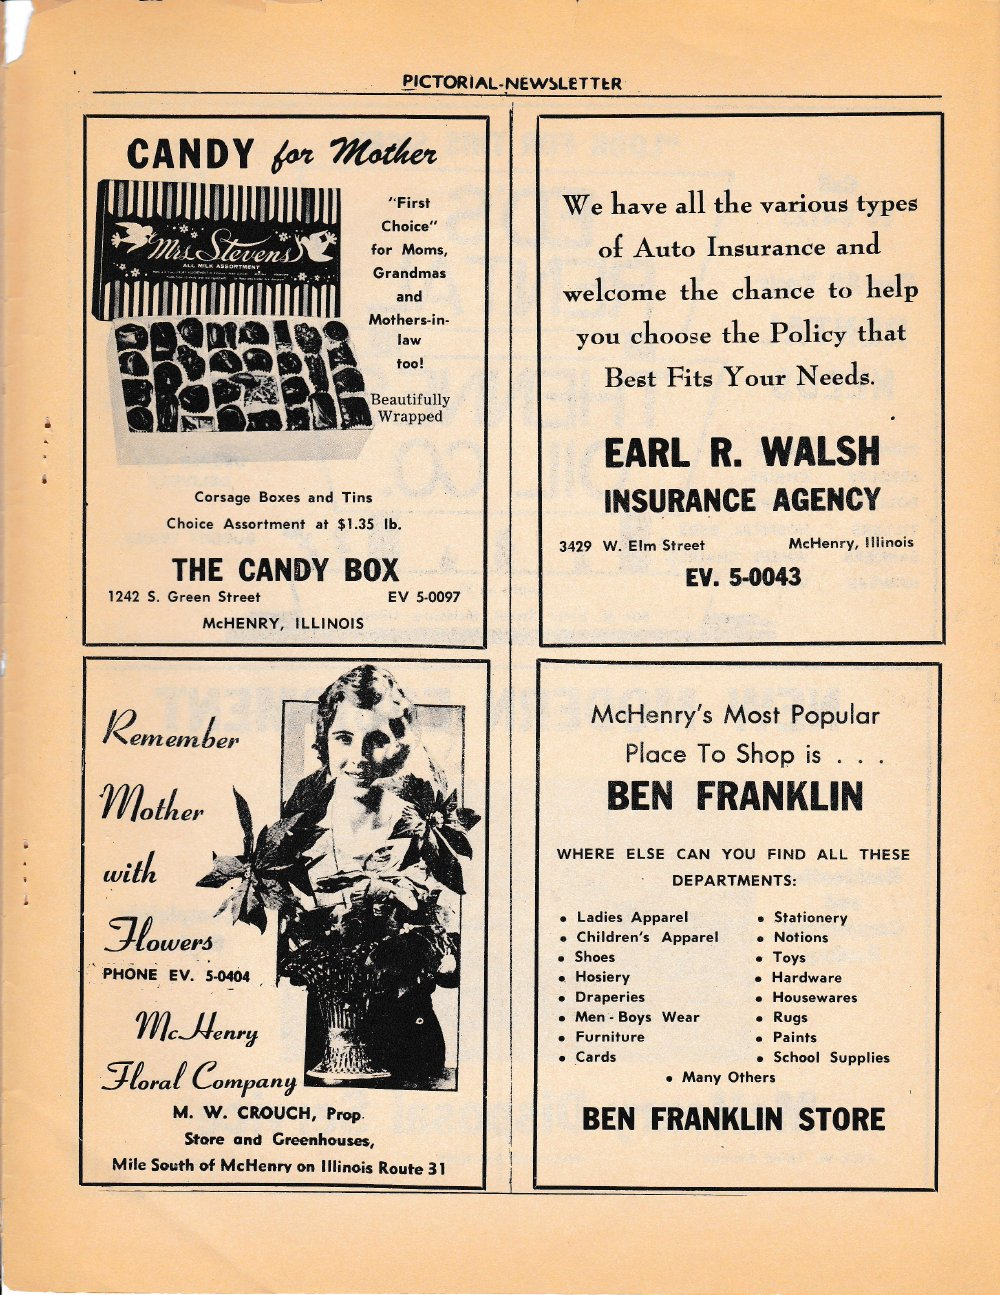 The Pictorial Newsletter: May 10, 1961